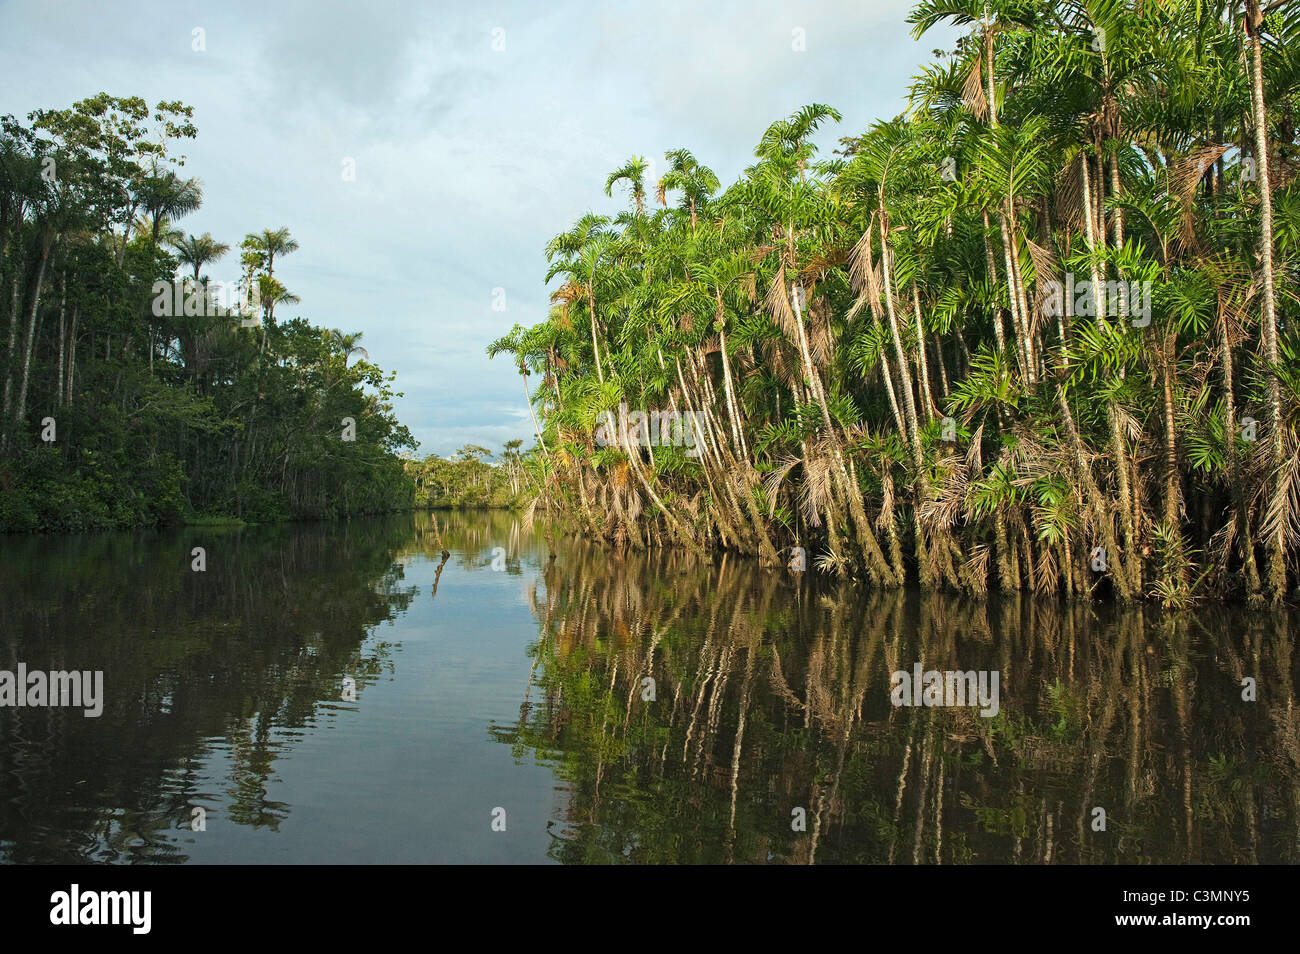 Flooded Igapo forest. Cocaya River. Eastern Amazon Rain Forest. Border of Peru and Ecuador, South America - Stock Image